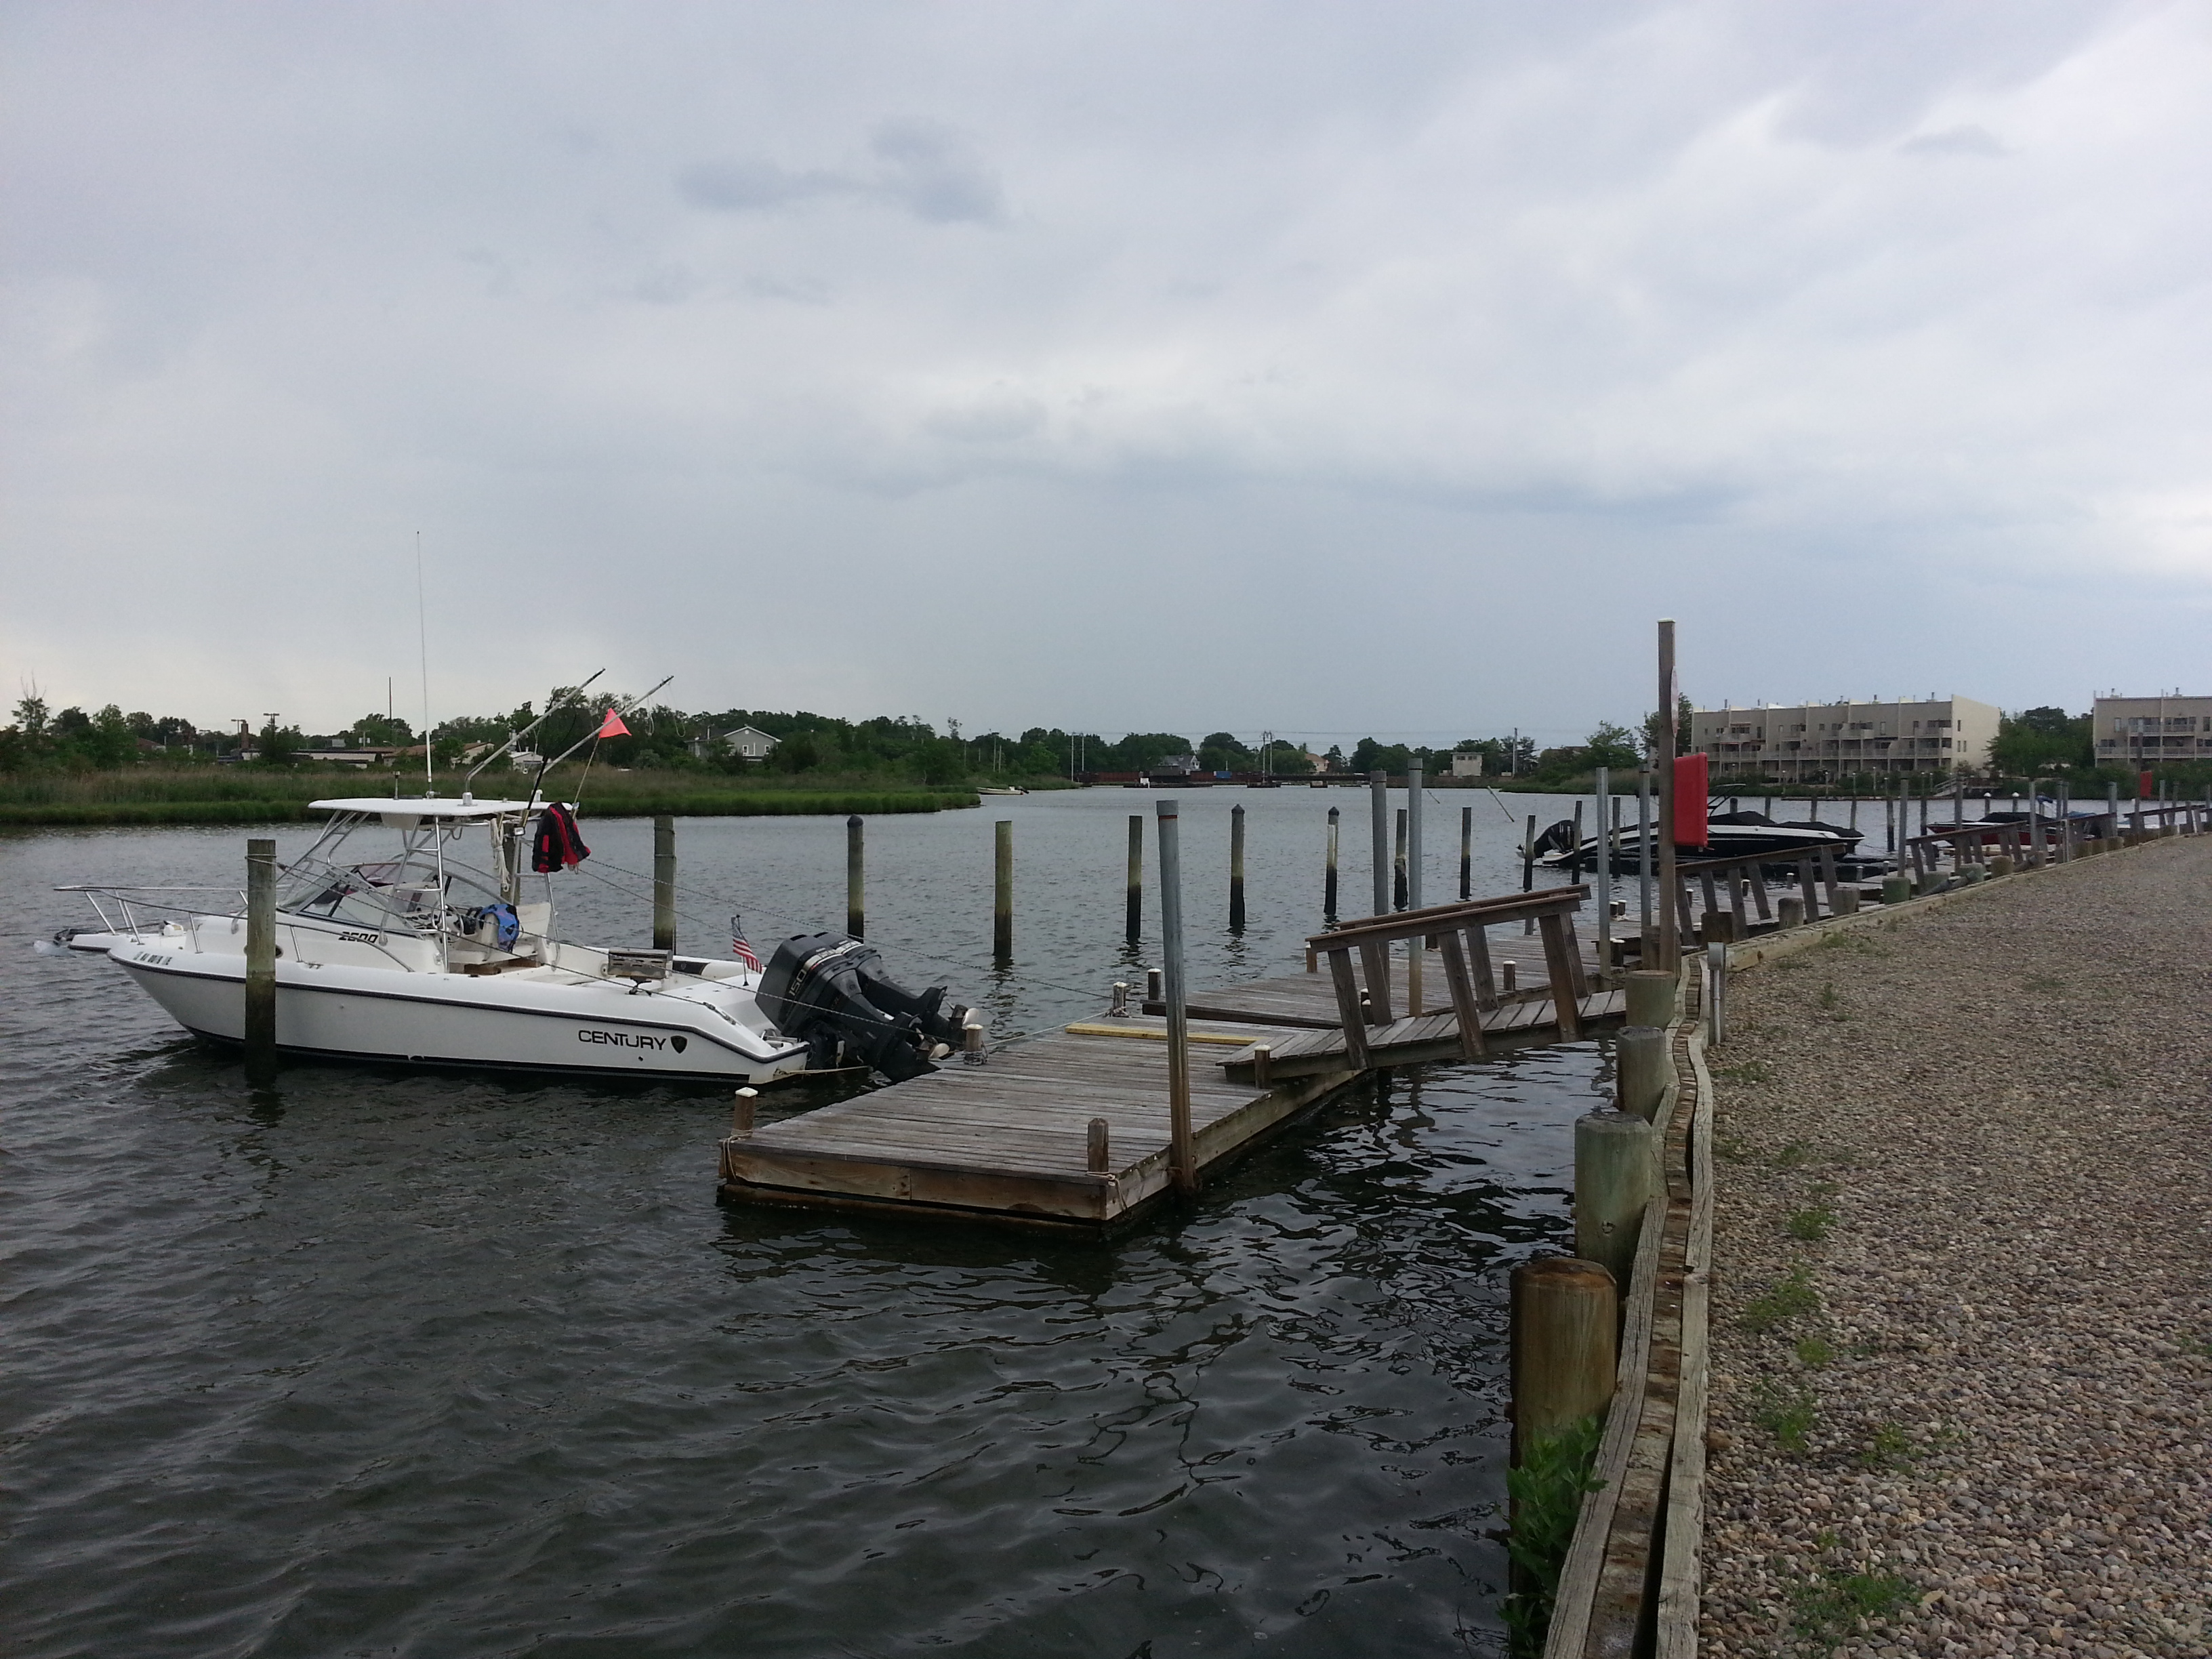 Each resident gets a boat slip in Harbor Pointe Condominium